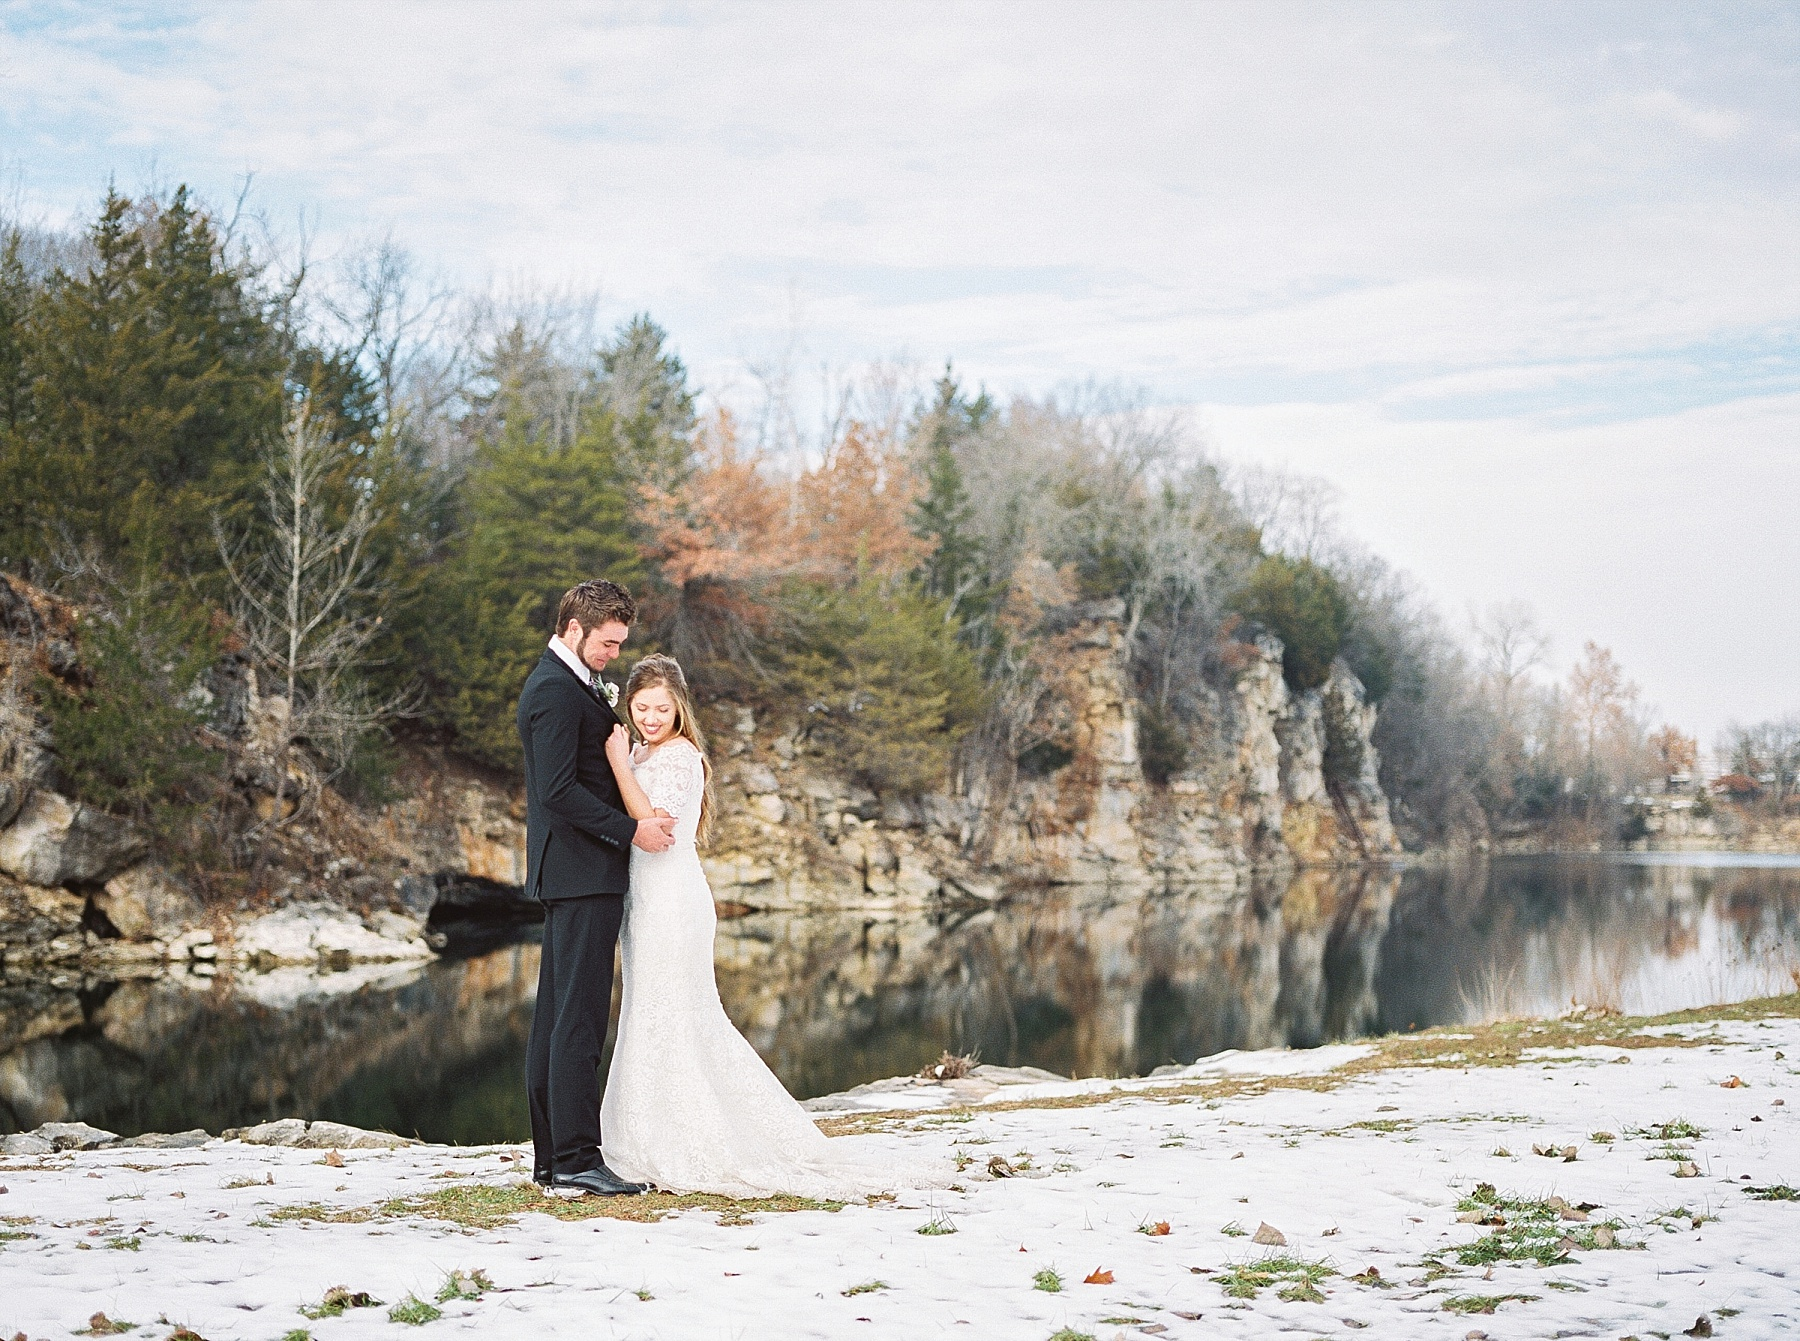 Snowy Winter Wedding at Wildcliff Events Lake With Earthy Jewel Tones and Organic Refined Style by Kelsi Kliethermes Photography Kansas City Missouri Wedding Photographer_0068.jpg